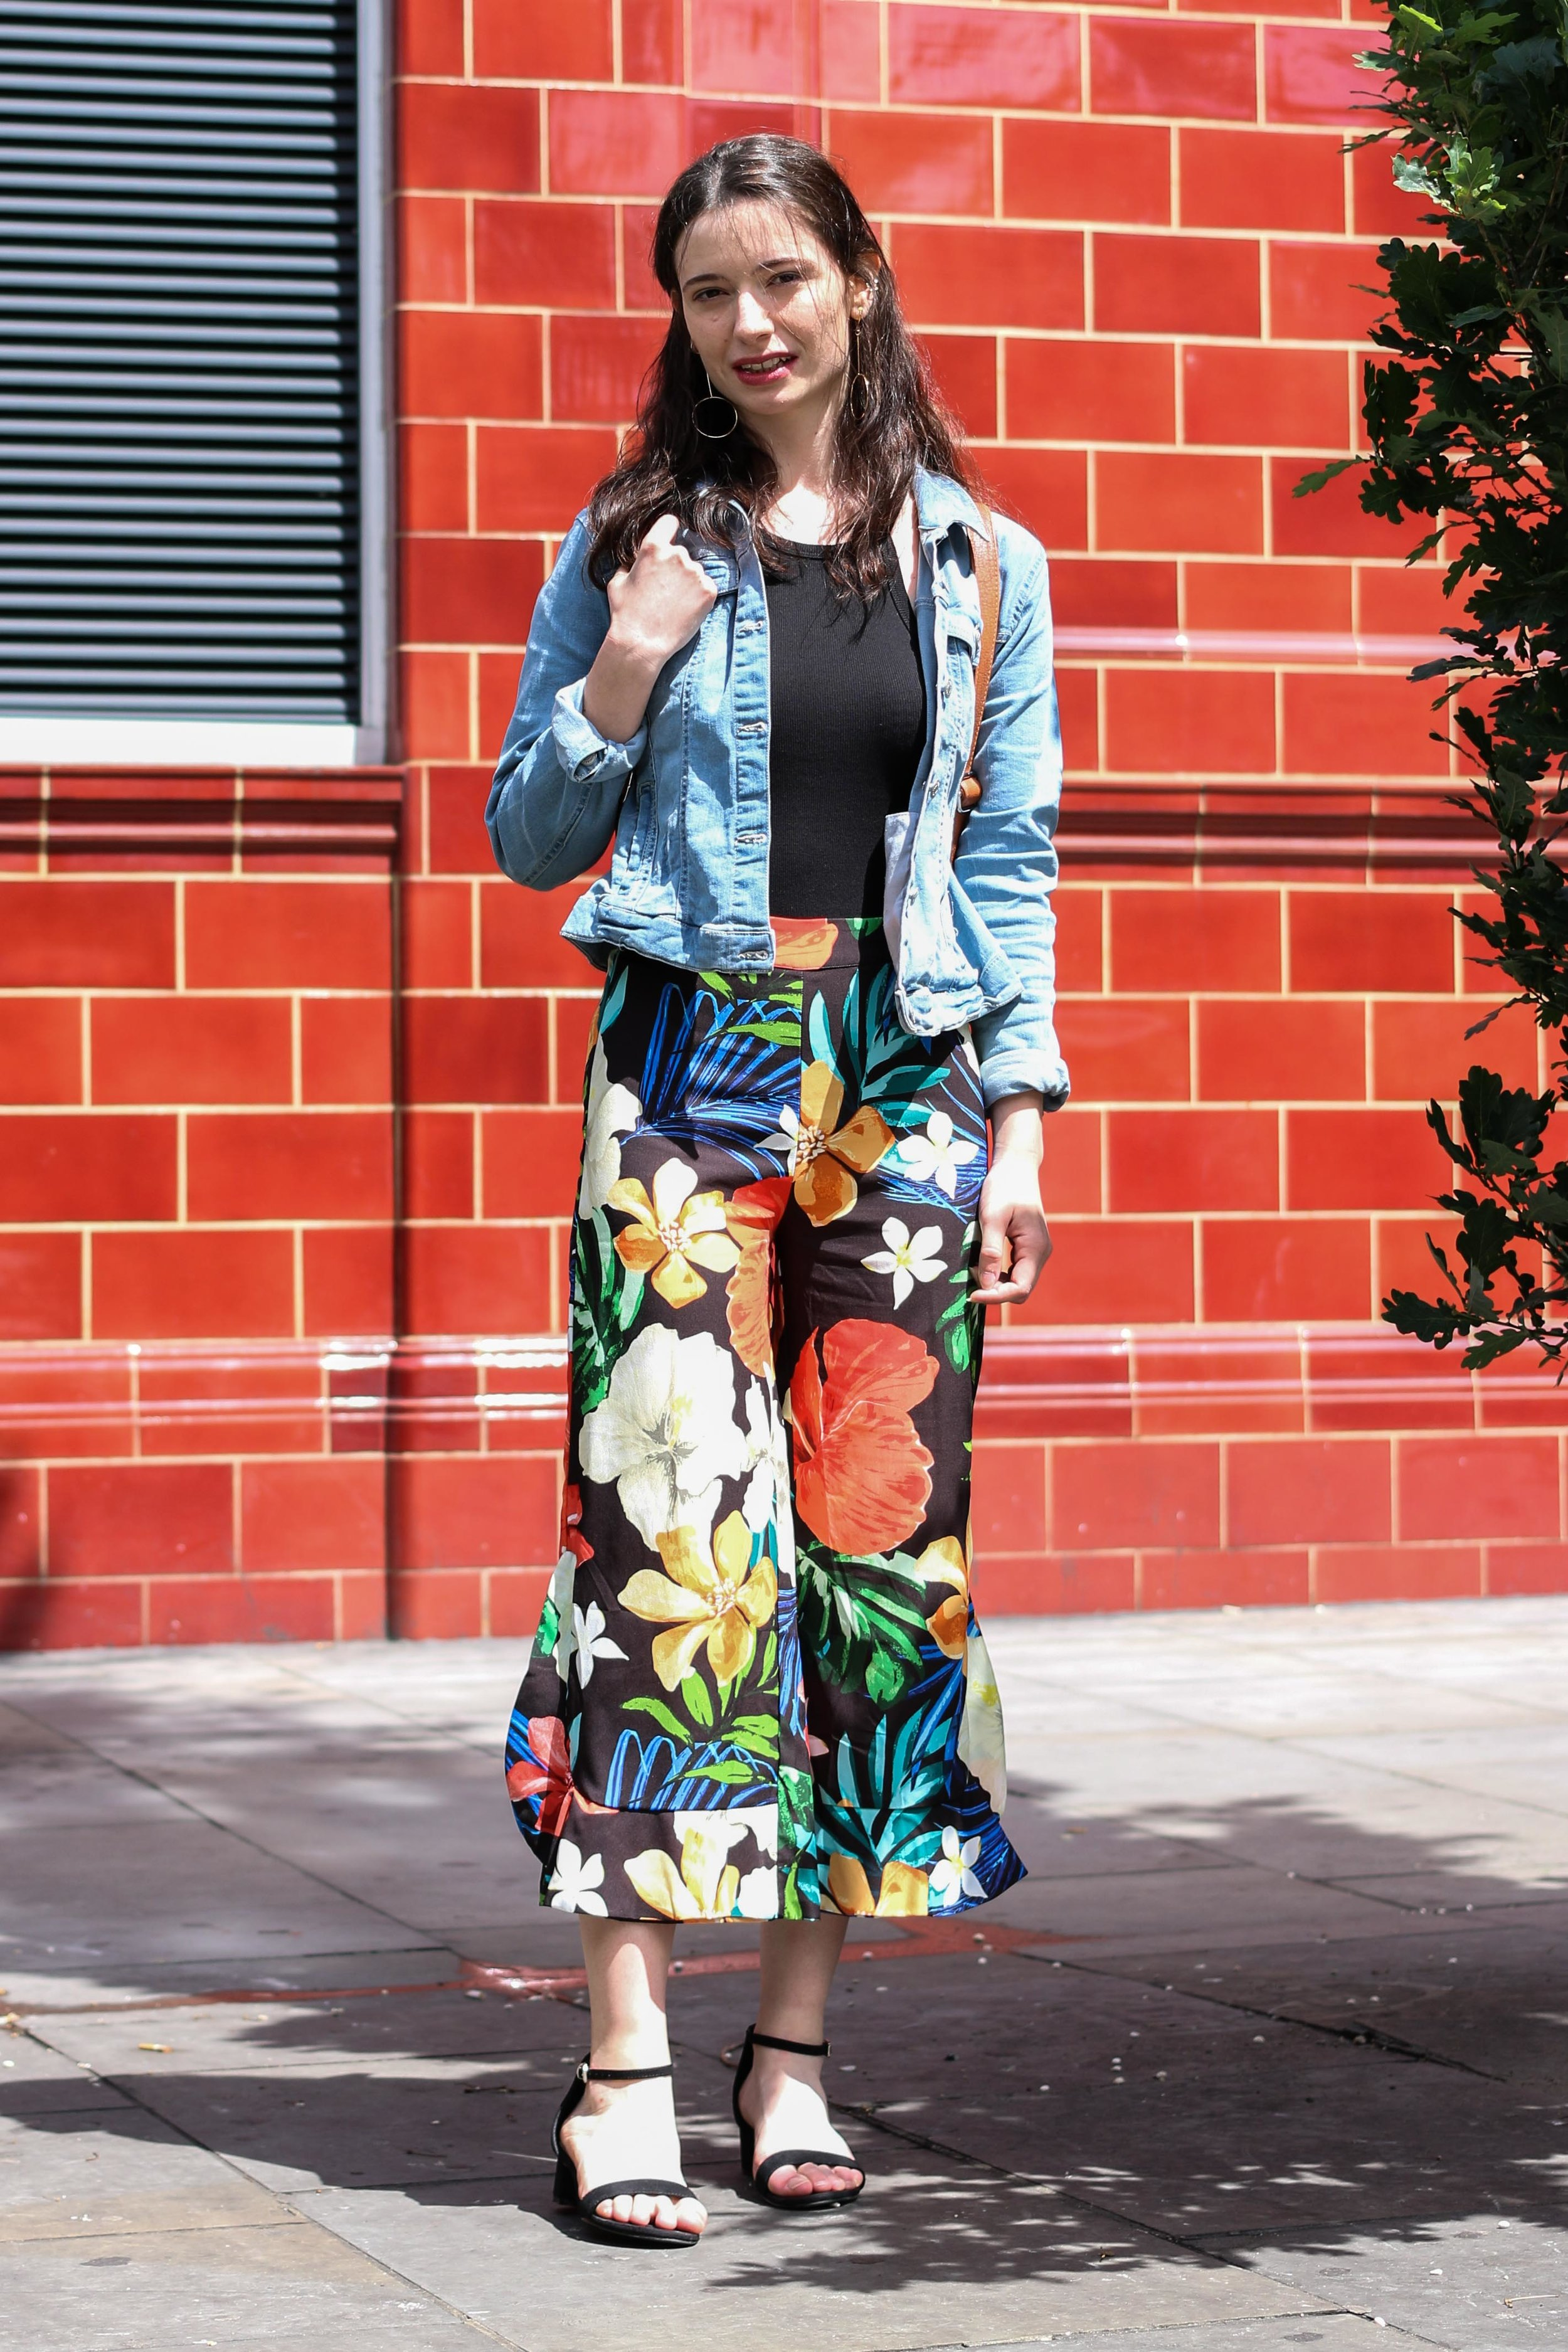 Street fashion stories_Imaginealady_flower_trouser